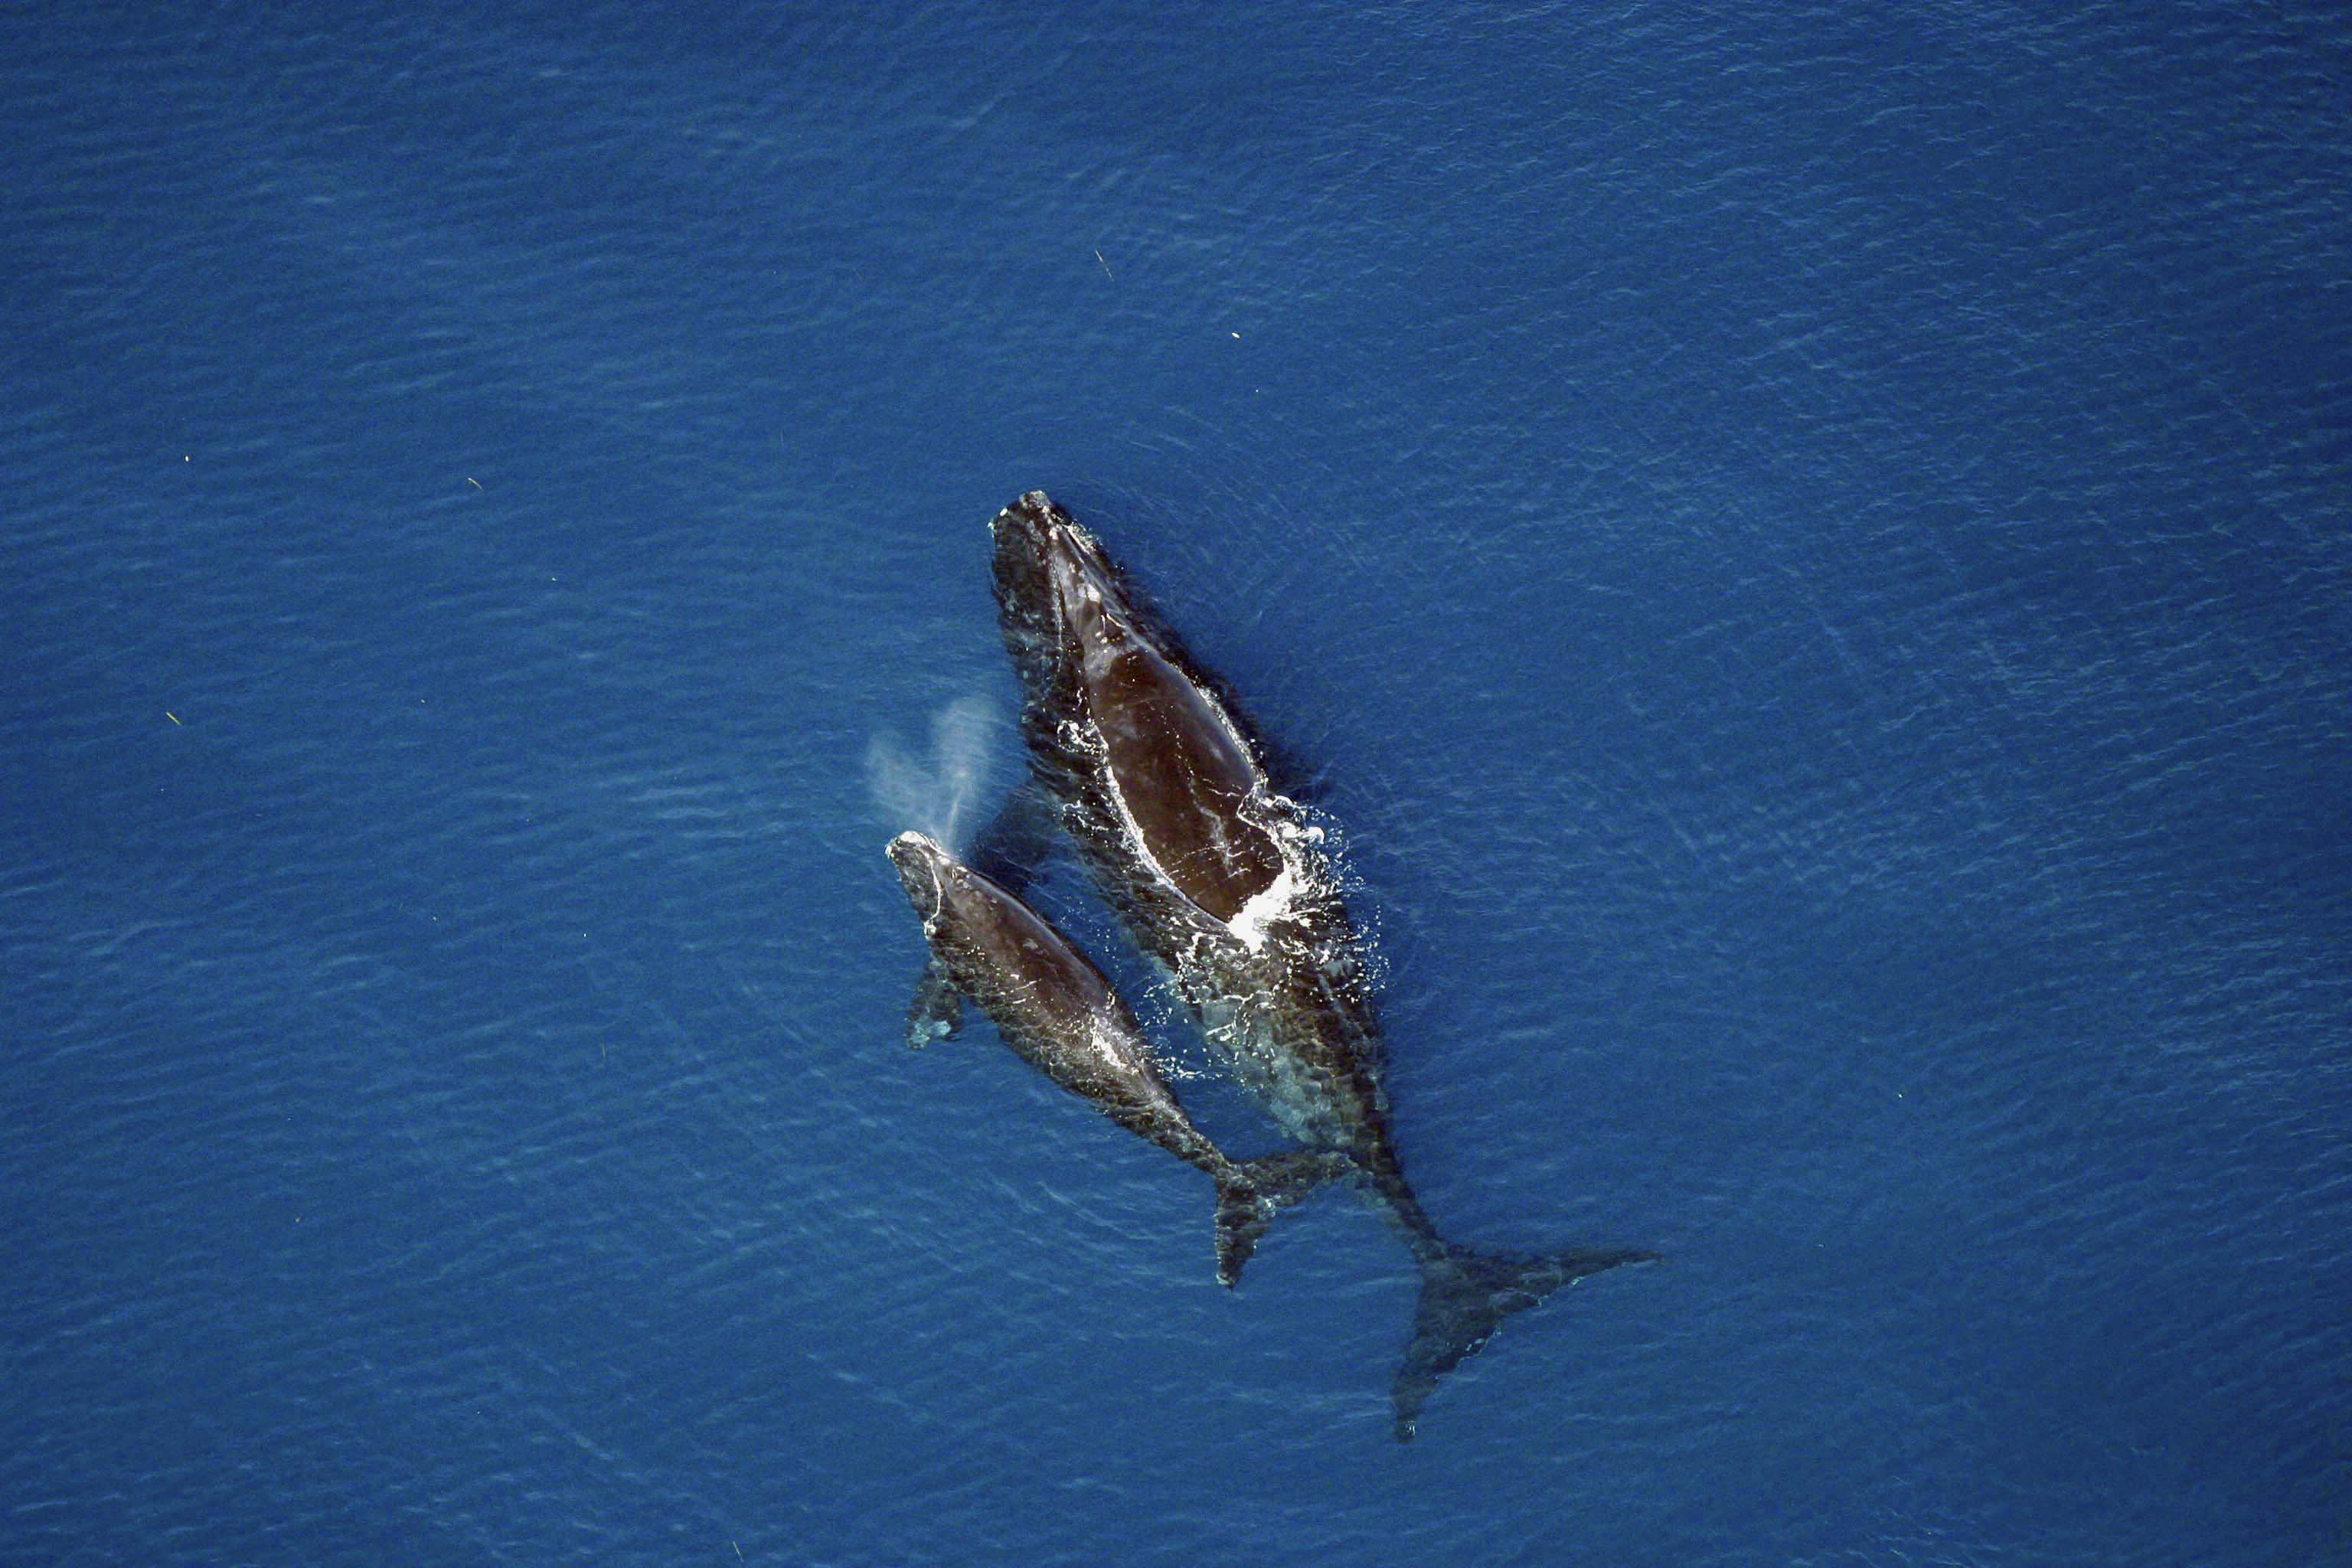 Right whale sightings dwindle this season